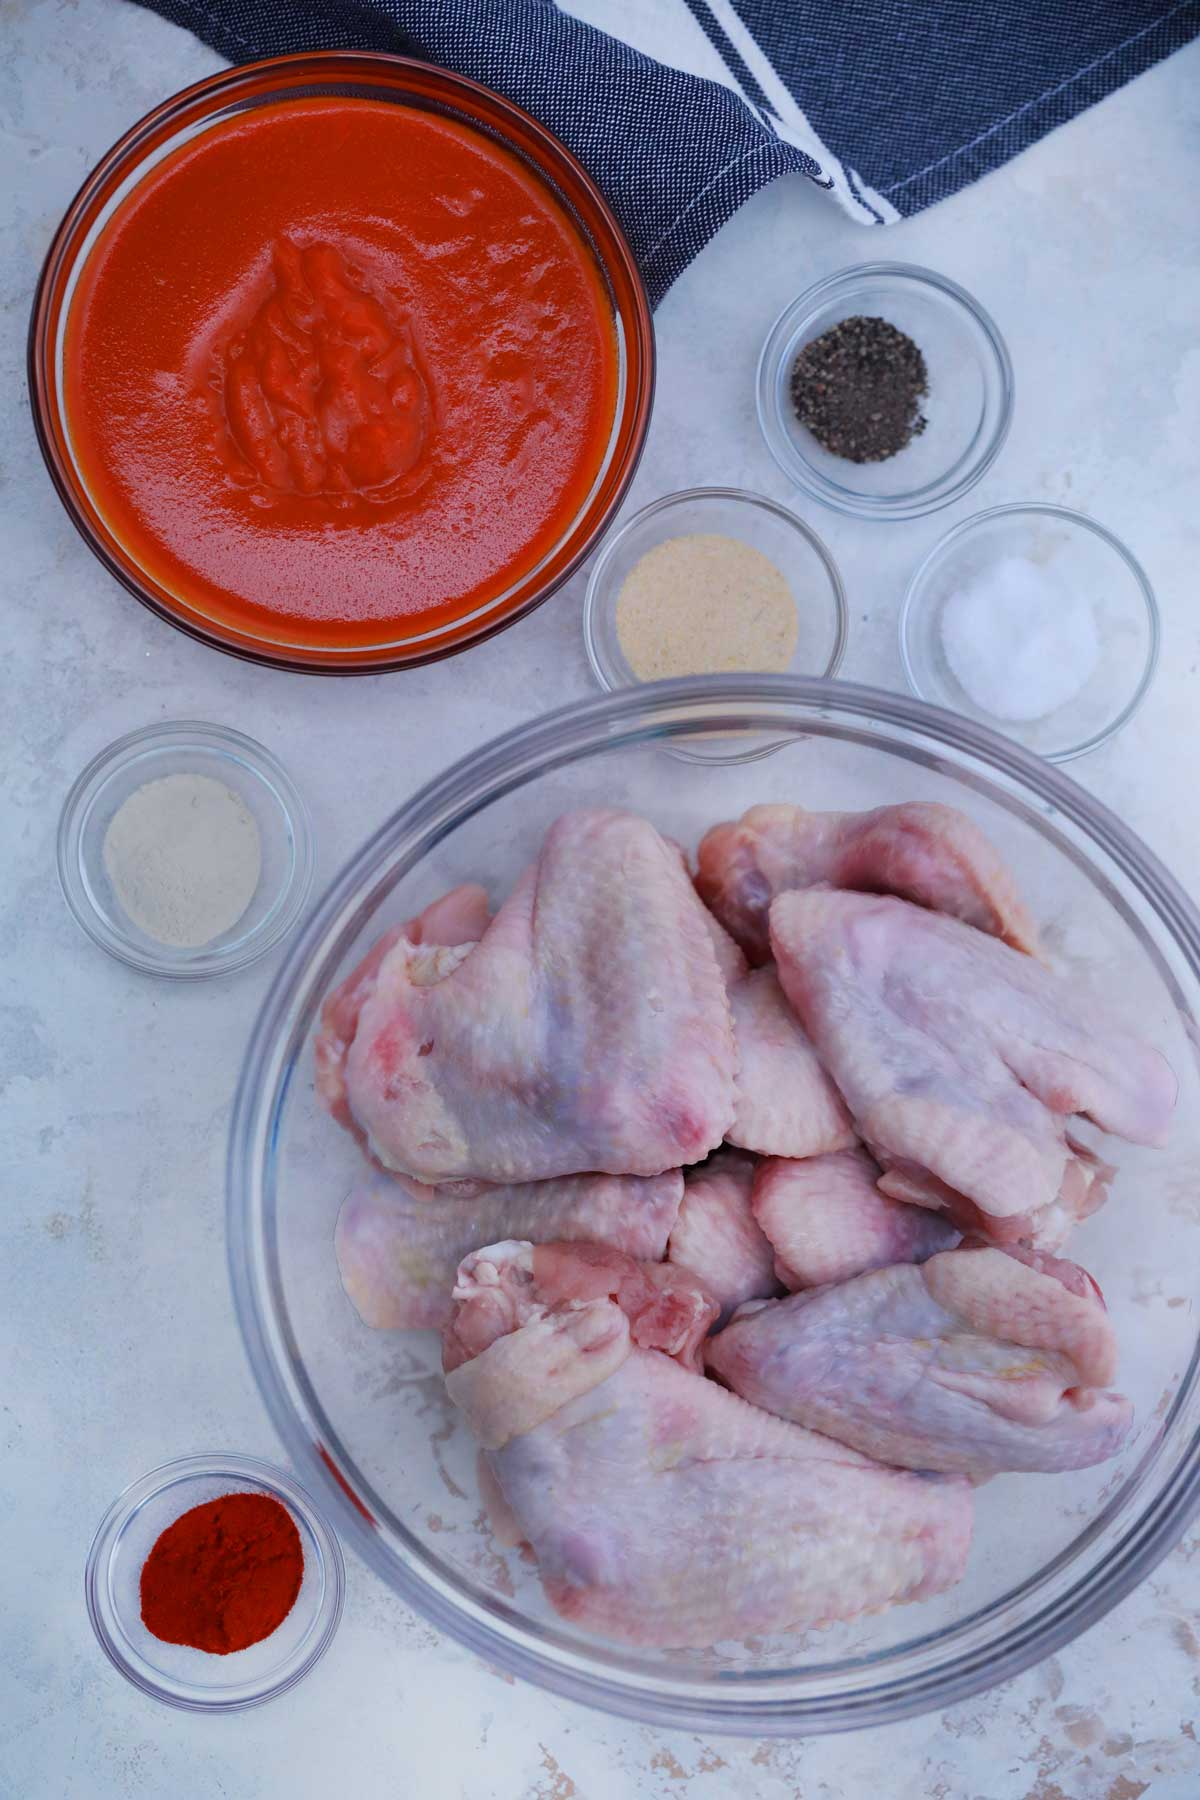 Ingredients for buffalo chicken wings